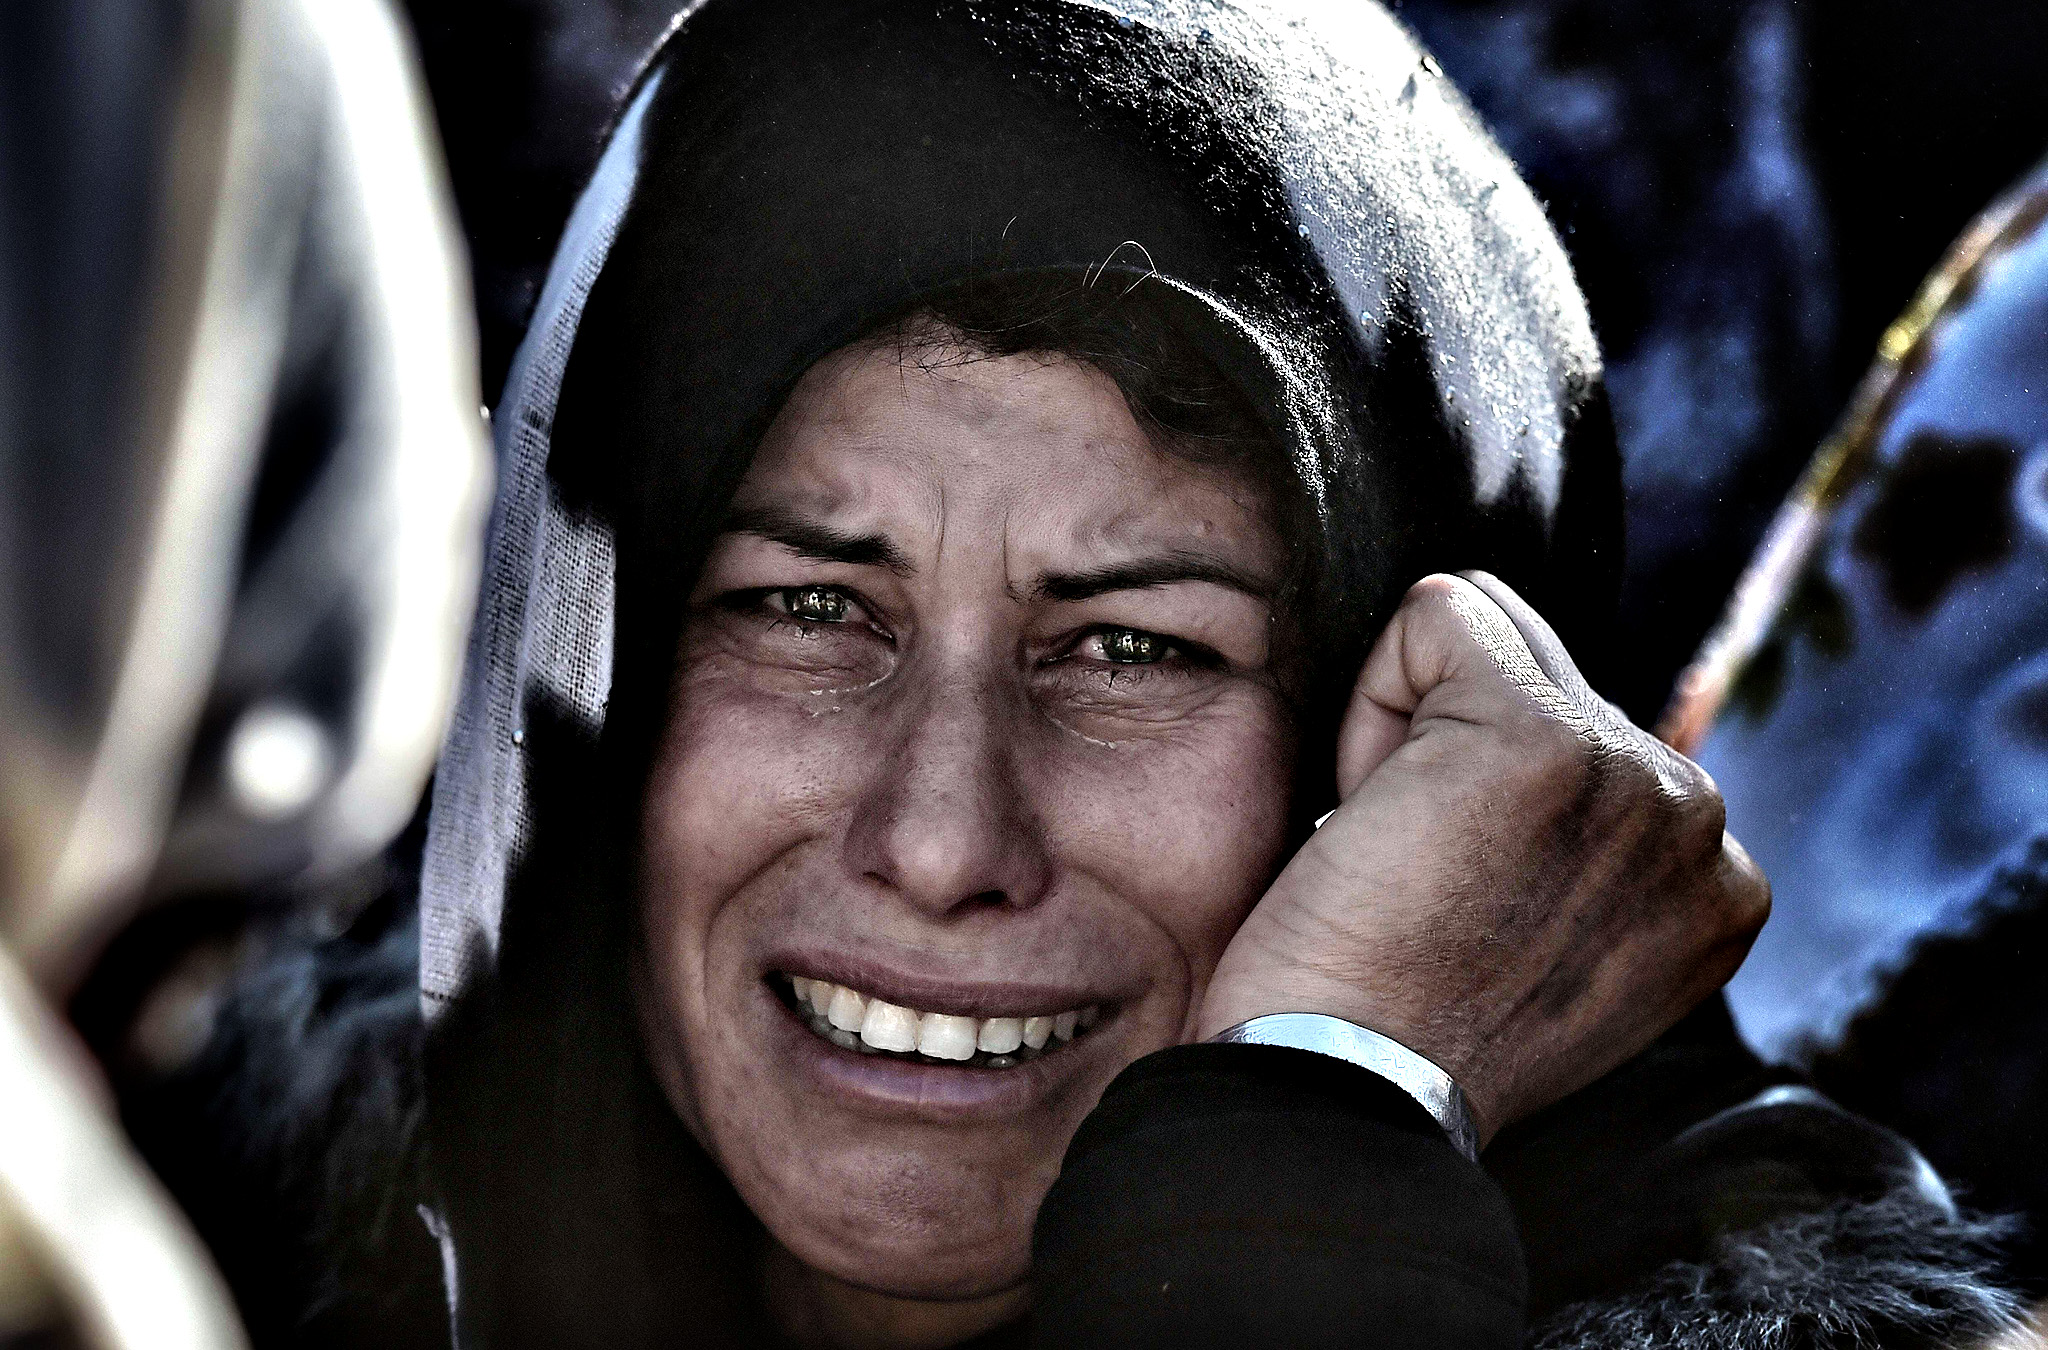 A woman cries during the funeral of a Kurdish People's Protection Units (YPG) fighter in Suruc, Turkish southeastern Sanliurfa province, on November 6, 2014. Turkey is pursuing a delicate but dangerous strategy after allowing peshmerga fighters to transit its soil to the besieged Syrian town of Kobane, fearing Kurdish domination of northern Syria but also risking the collapse of the peace process with Turkish Kurds.